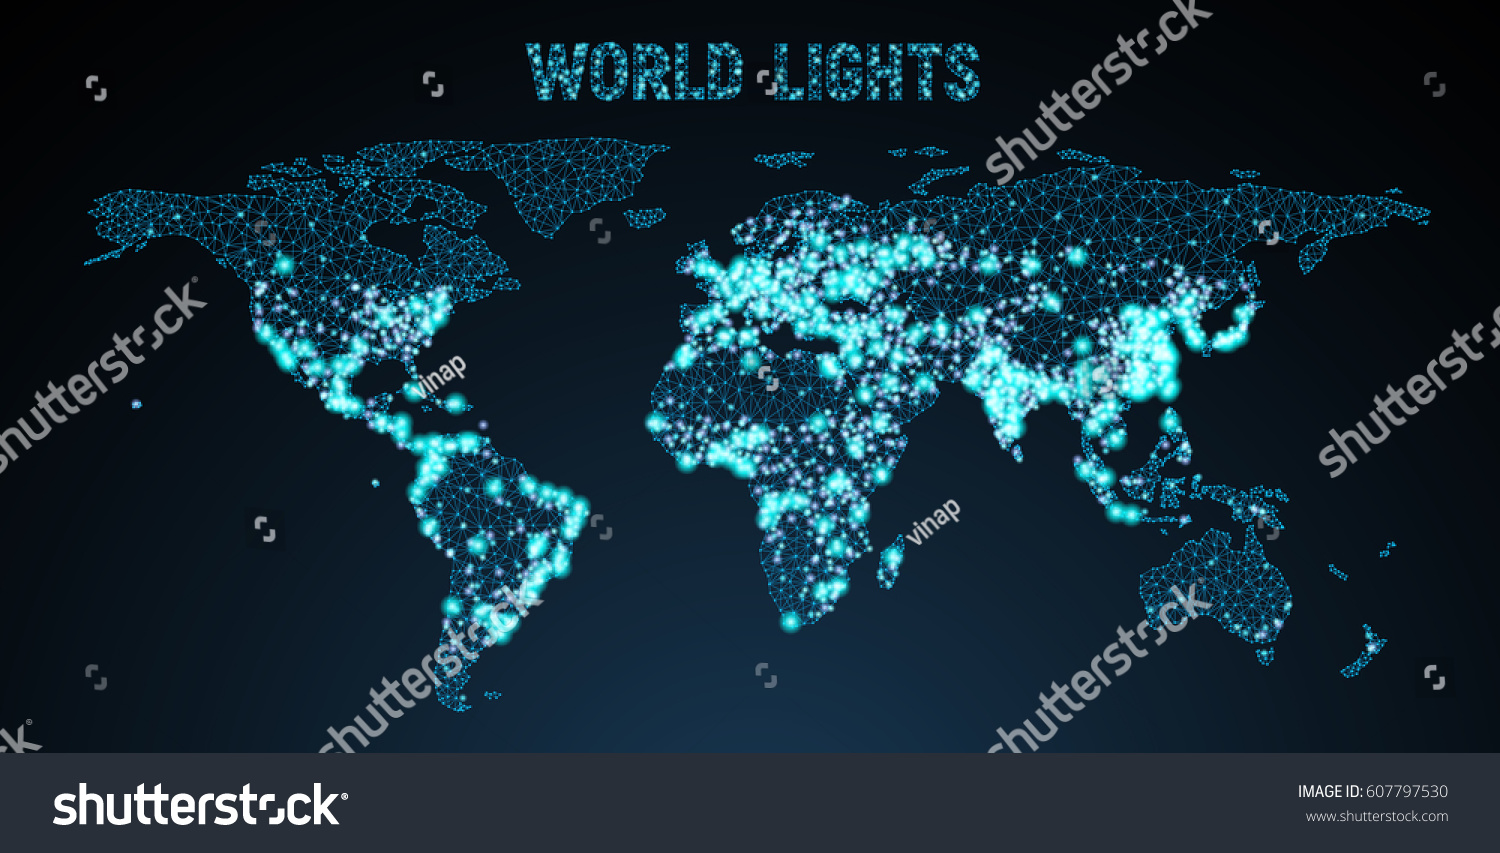 Lowpoly Image Global Map Lights Form Stock Illustration 607797530 ...